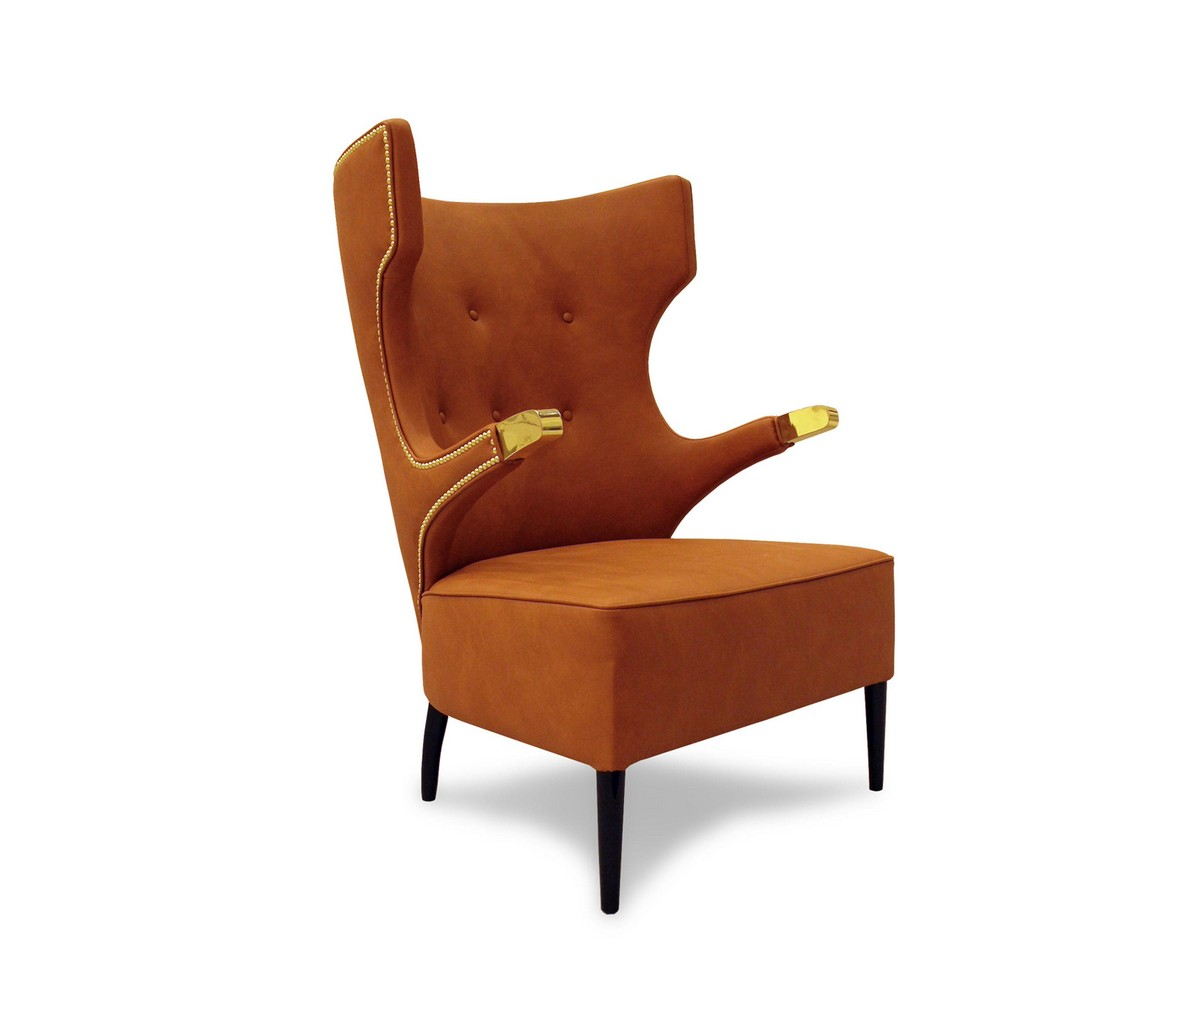 Maison et Objet 2019: Luxury Armchairs at Covet House maison et objet 2019 Maison et Objet 2019: Luxury Armchairs at Covet House sika2